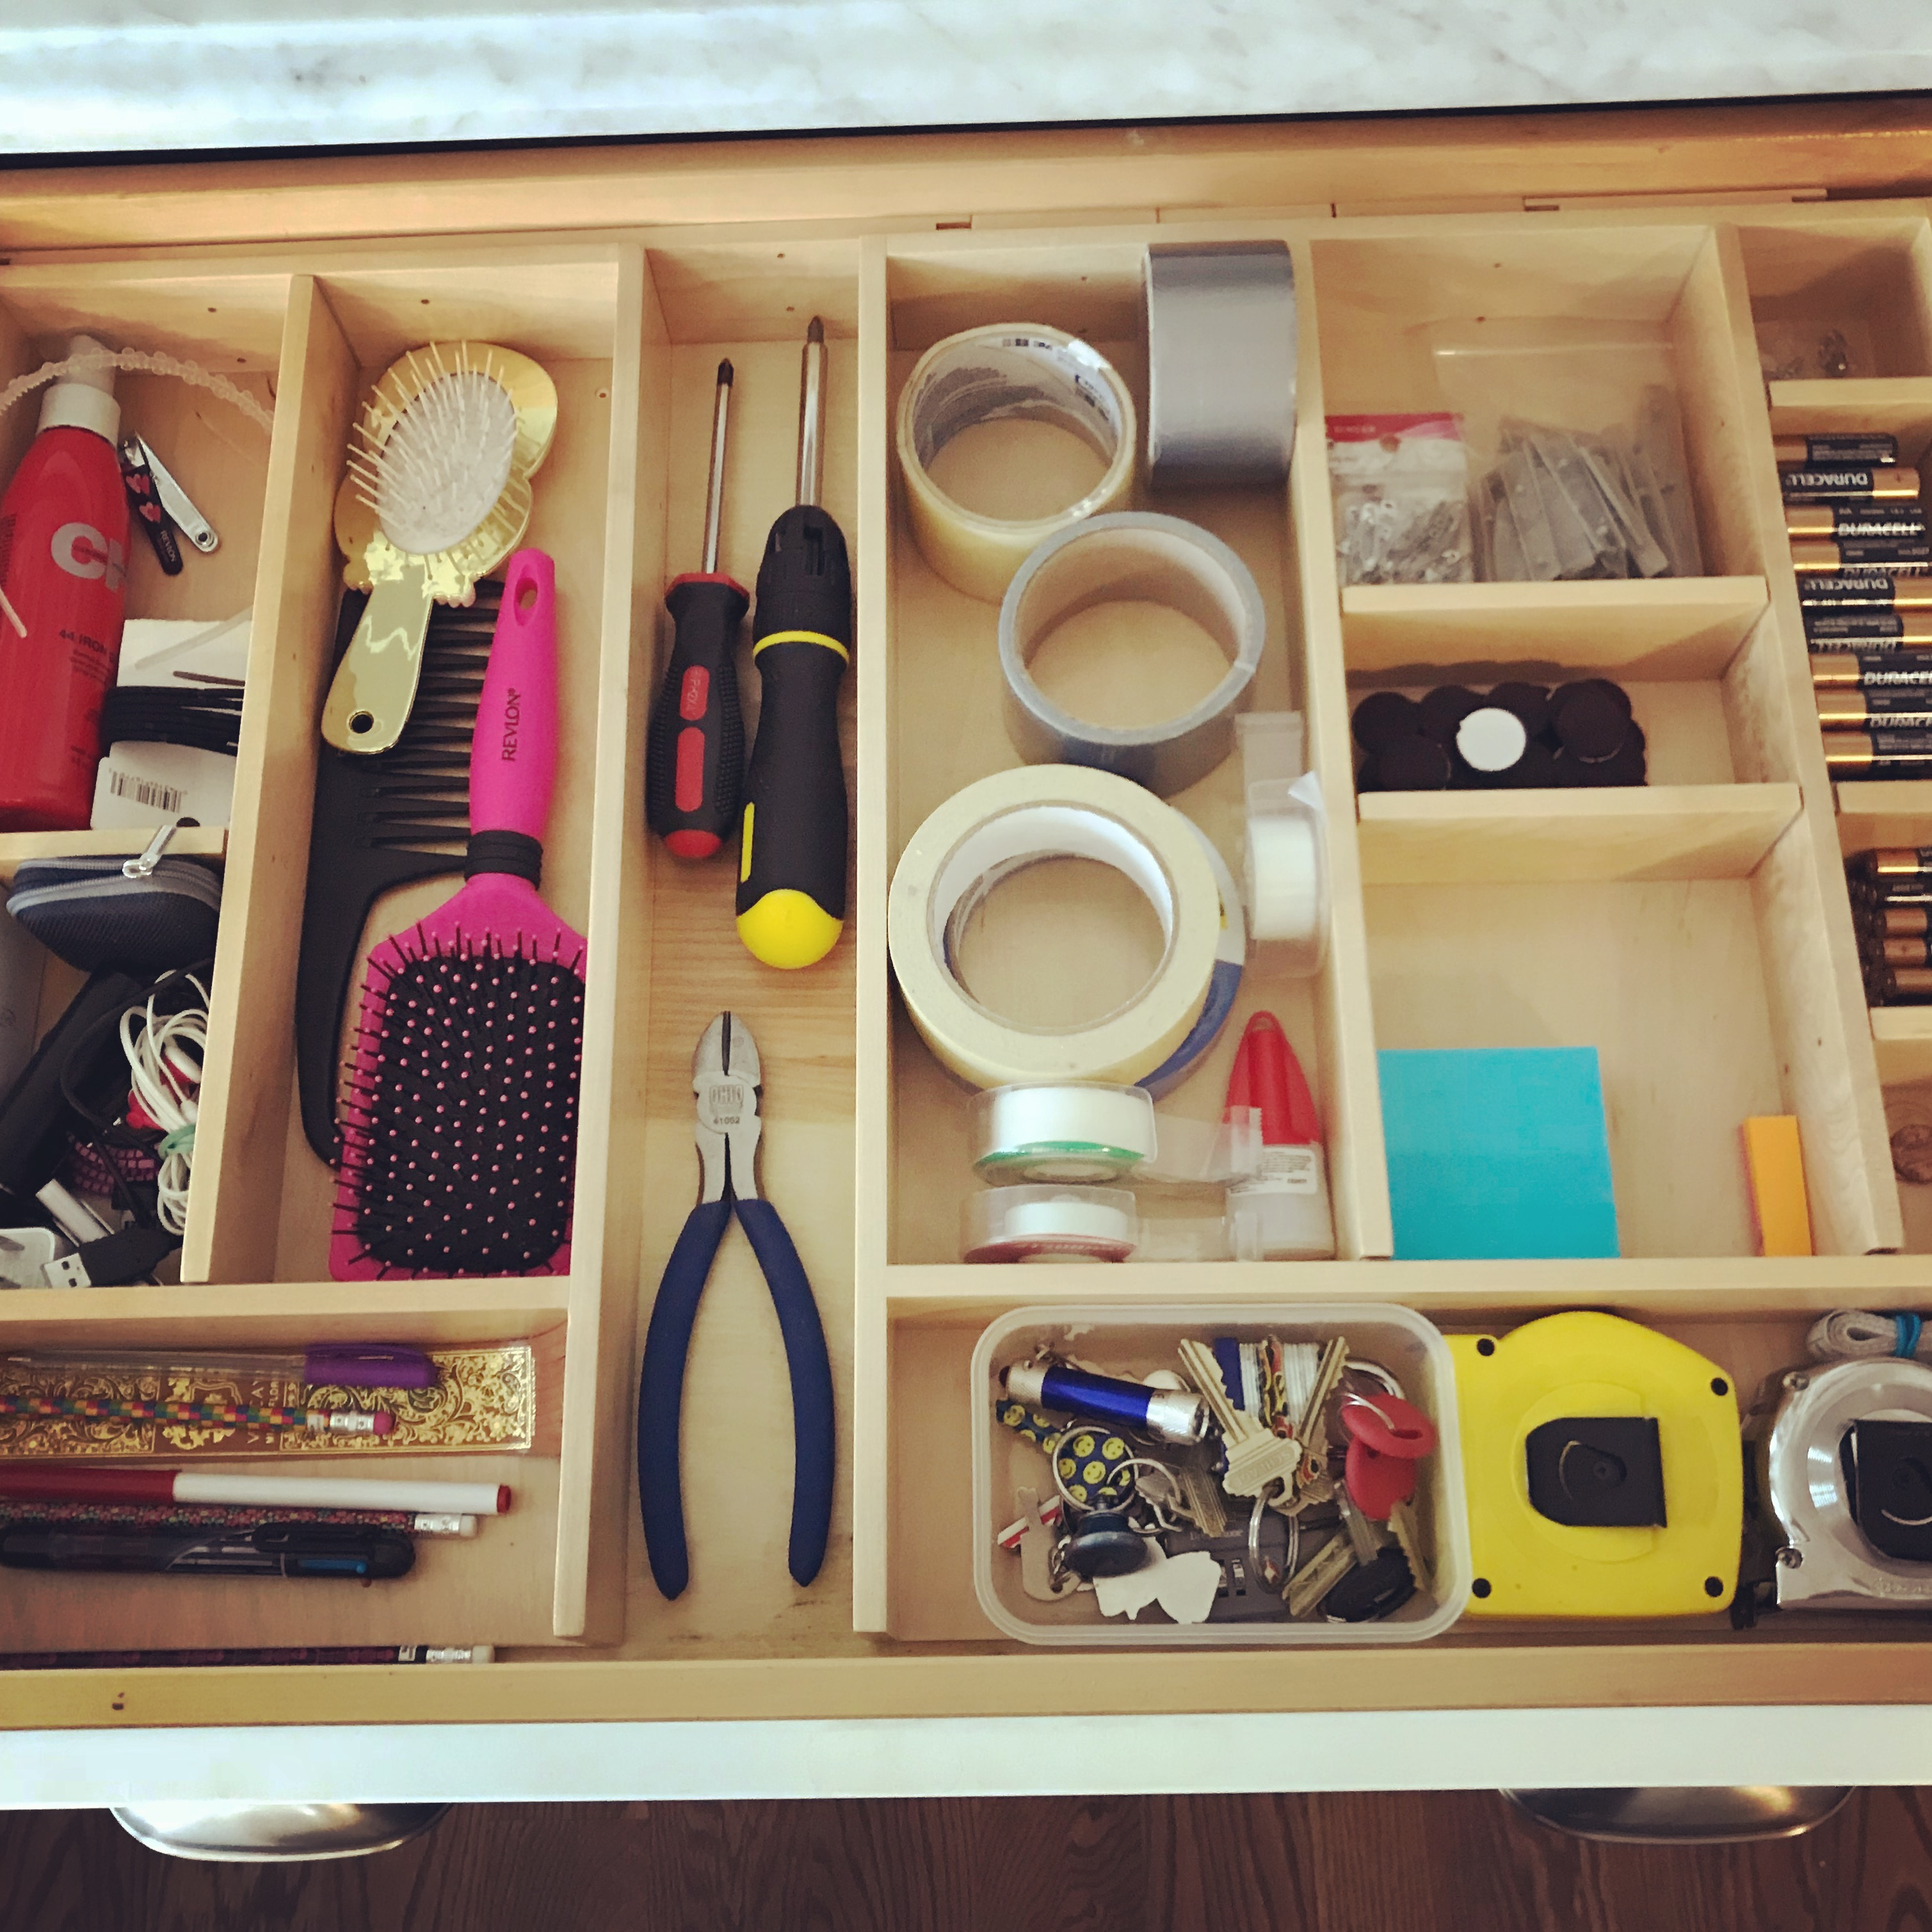 Are You A Busy Person Struggling With Clutter Build Up? Would You Like To  Be This Organized?